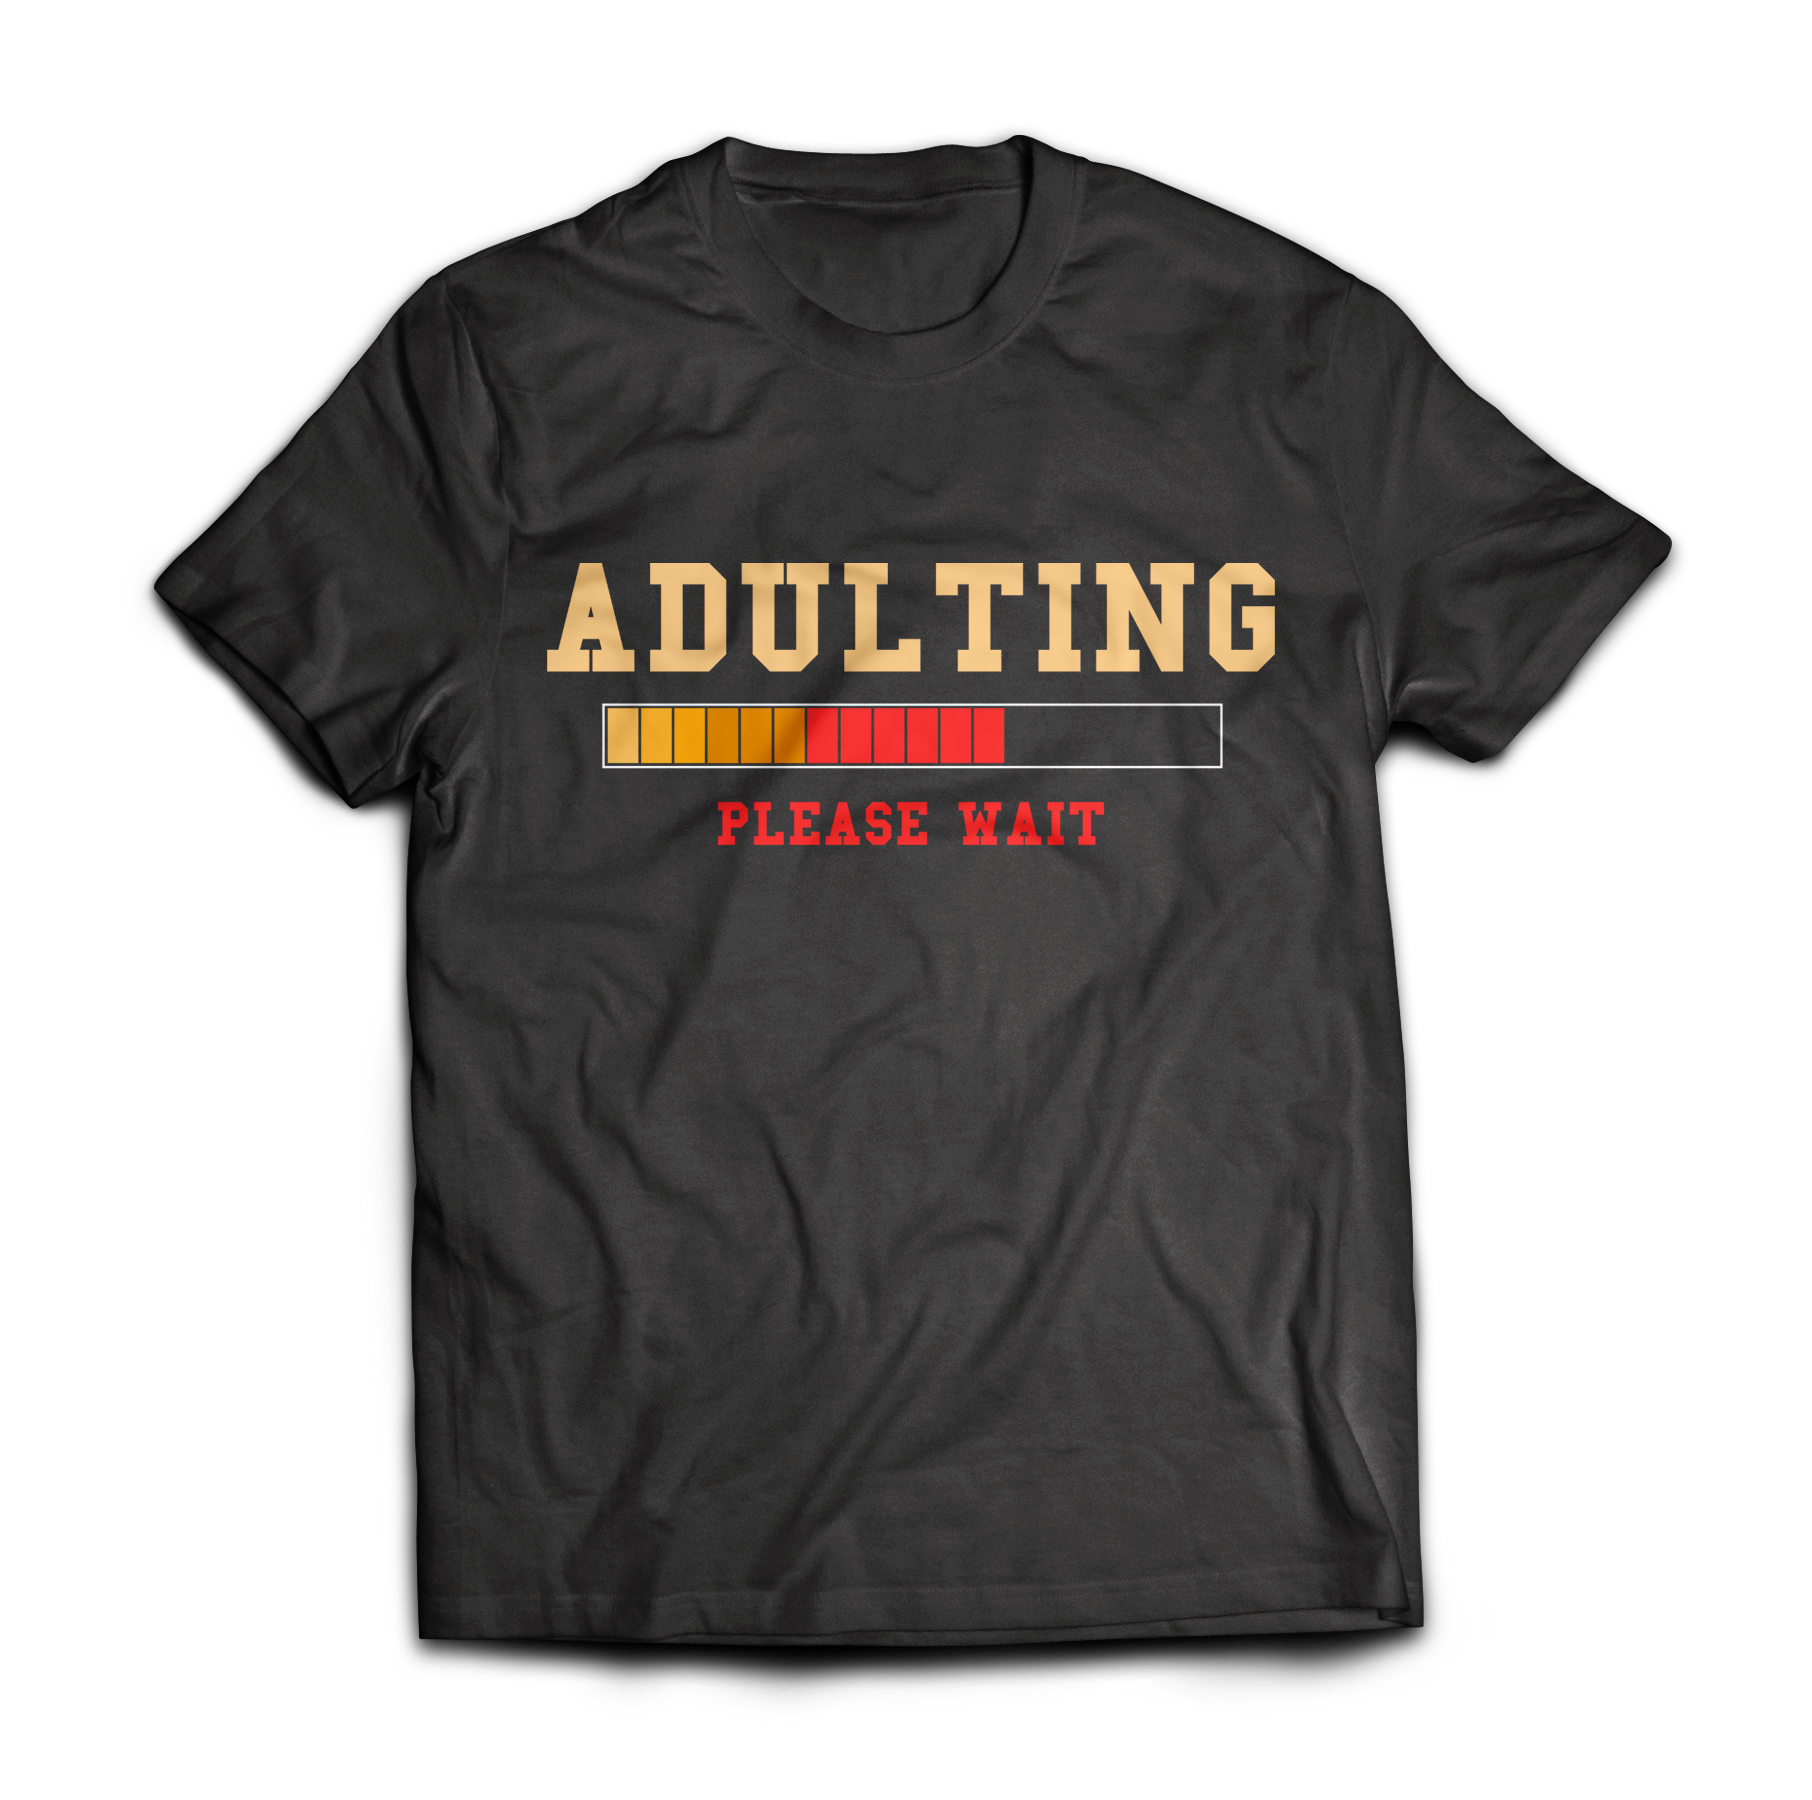 Adulting Please Wait Adult 18th Birthday Gift Ideas For 18 Years Old Girls Boys T Shirt Merch By Amazon Pre Made Designs